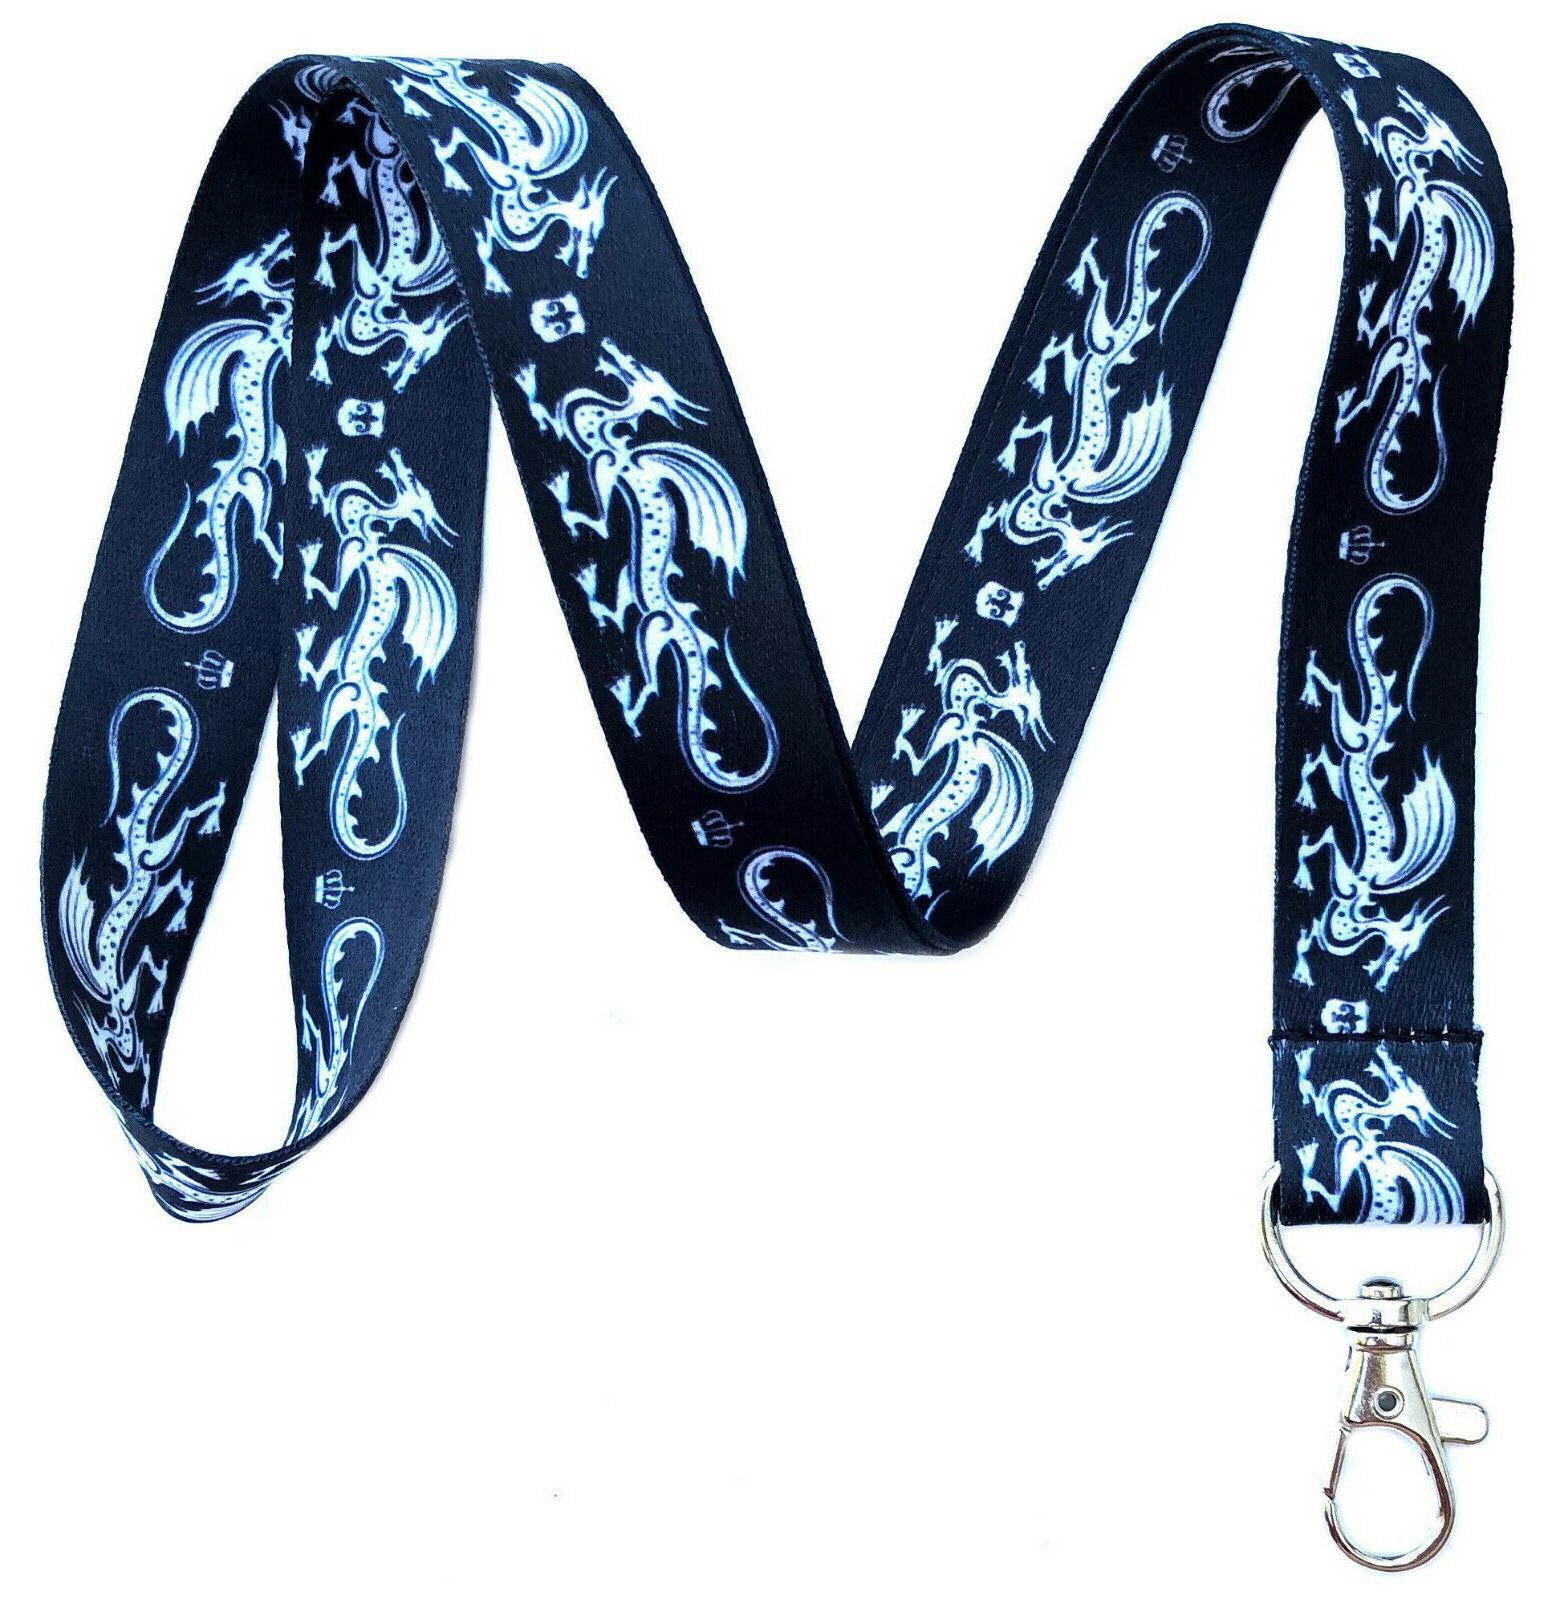 medieval themed lanyards id badge holders keychains